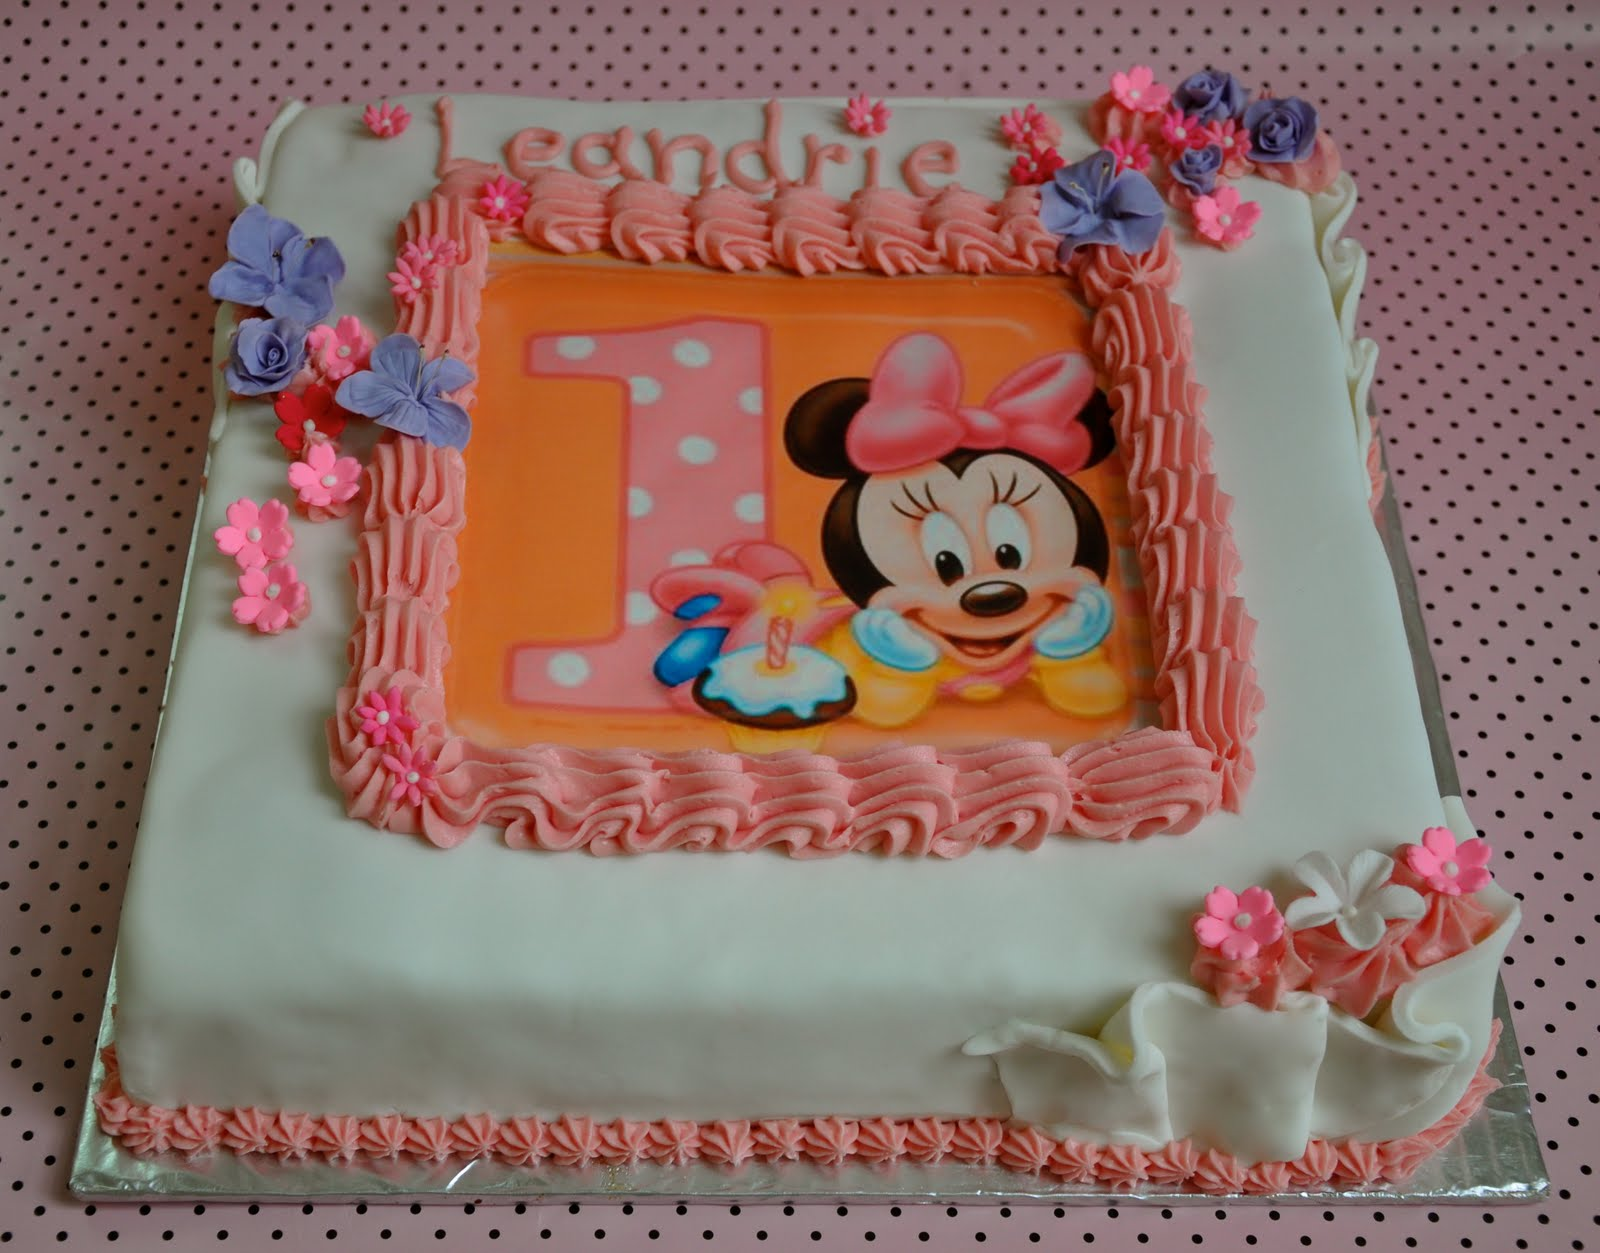 Birthday Cake Ideas One Year Old : Pin Birthday Cake Ideas One Year Old Girl 11 800x800jpg ...